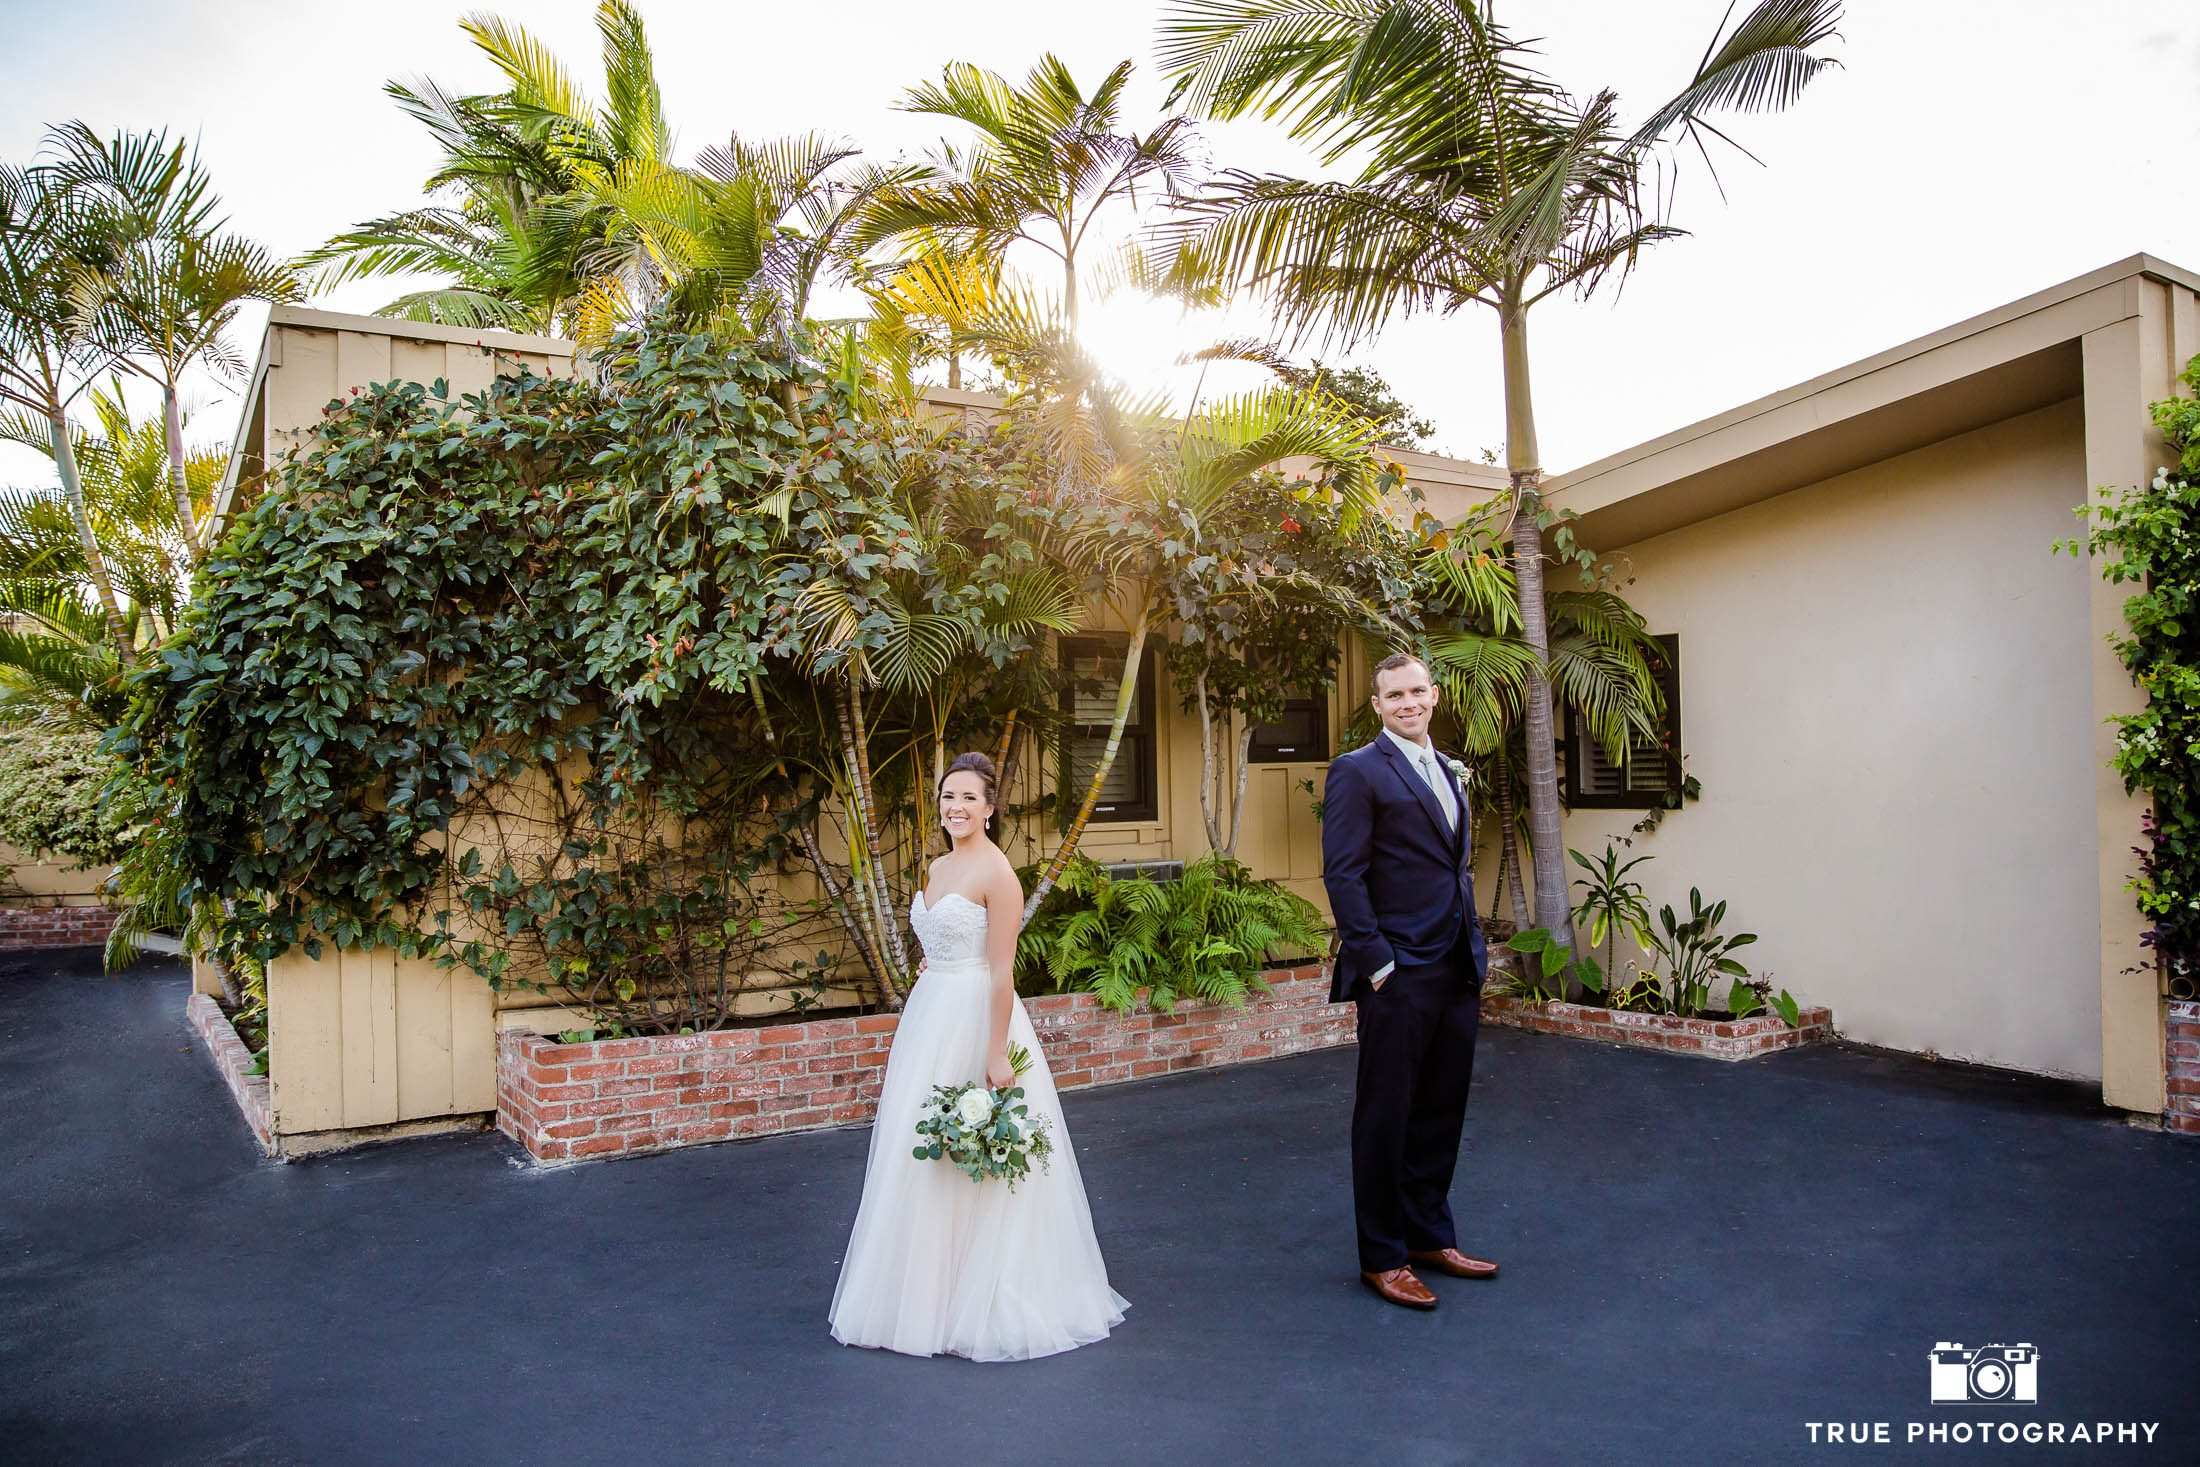 Bride and Groom face opposite directions and look into camera